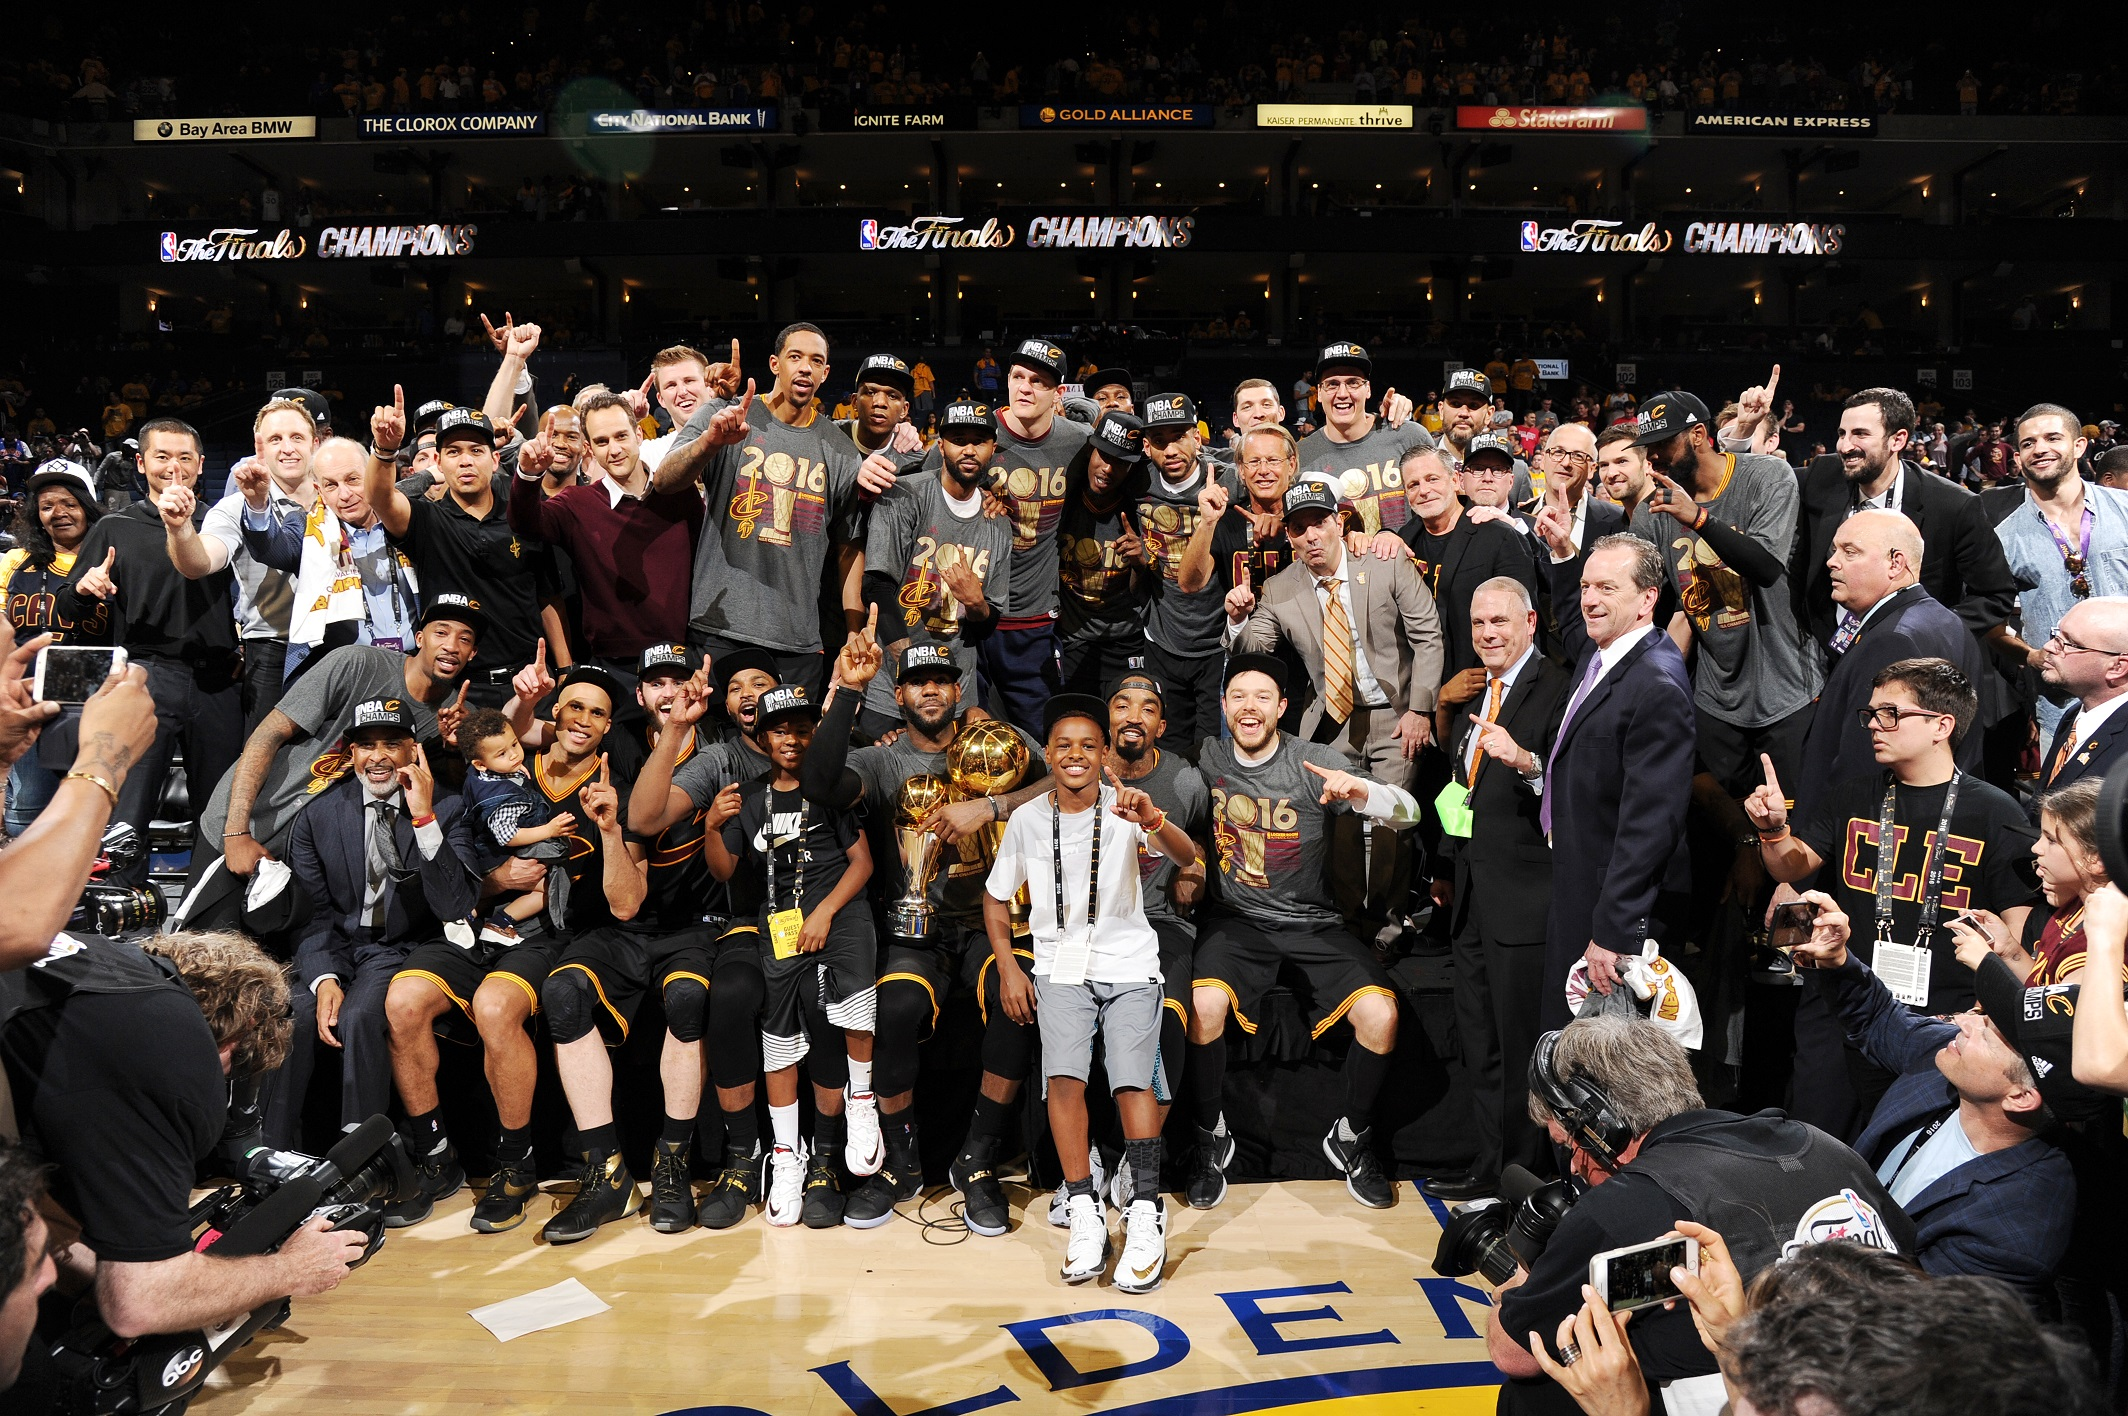 OAKLAND, CA - JUNE 19: The Cleveland Cavaliers celebrate after winning Game Seven of the 2016 NBA Finals against the Golden State Warriors on June 19, 2016 at ORACLE Arena in Oakland, California. NOTE TO USER: User expressly acknowledges and agrees that, by downloading and/or using this Photograph, user is consenting to the terms and conditions of the Getty Images License Agreement. Mandatory Copyright Notice: Copyright 2016 NBAE (Photo by Andrew D. Bernstein/NBAE via Getty Images)